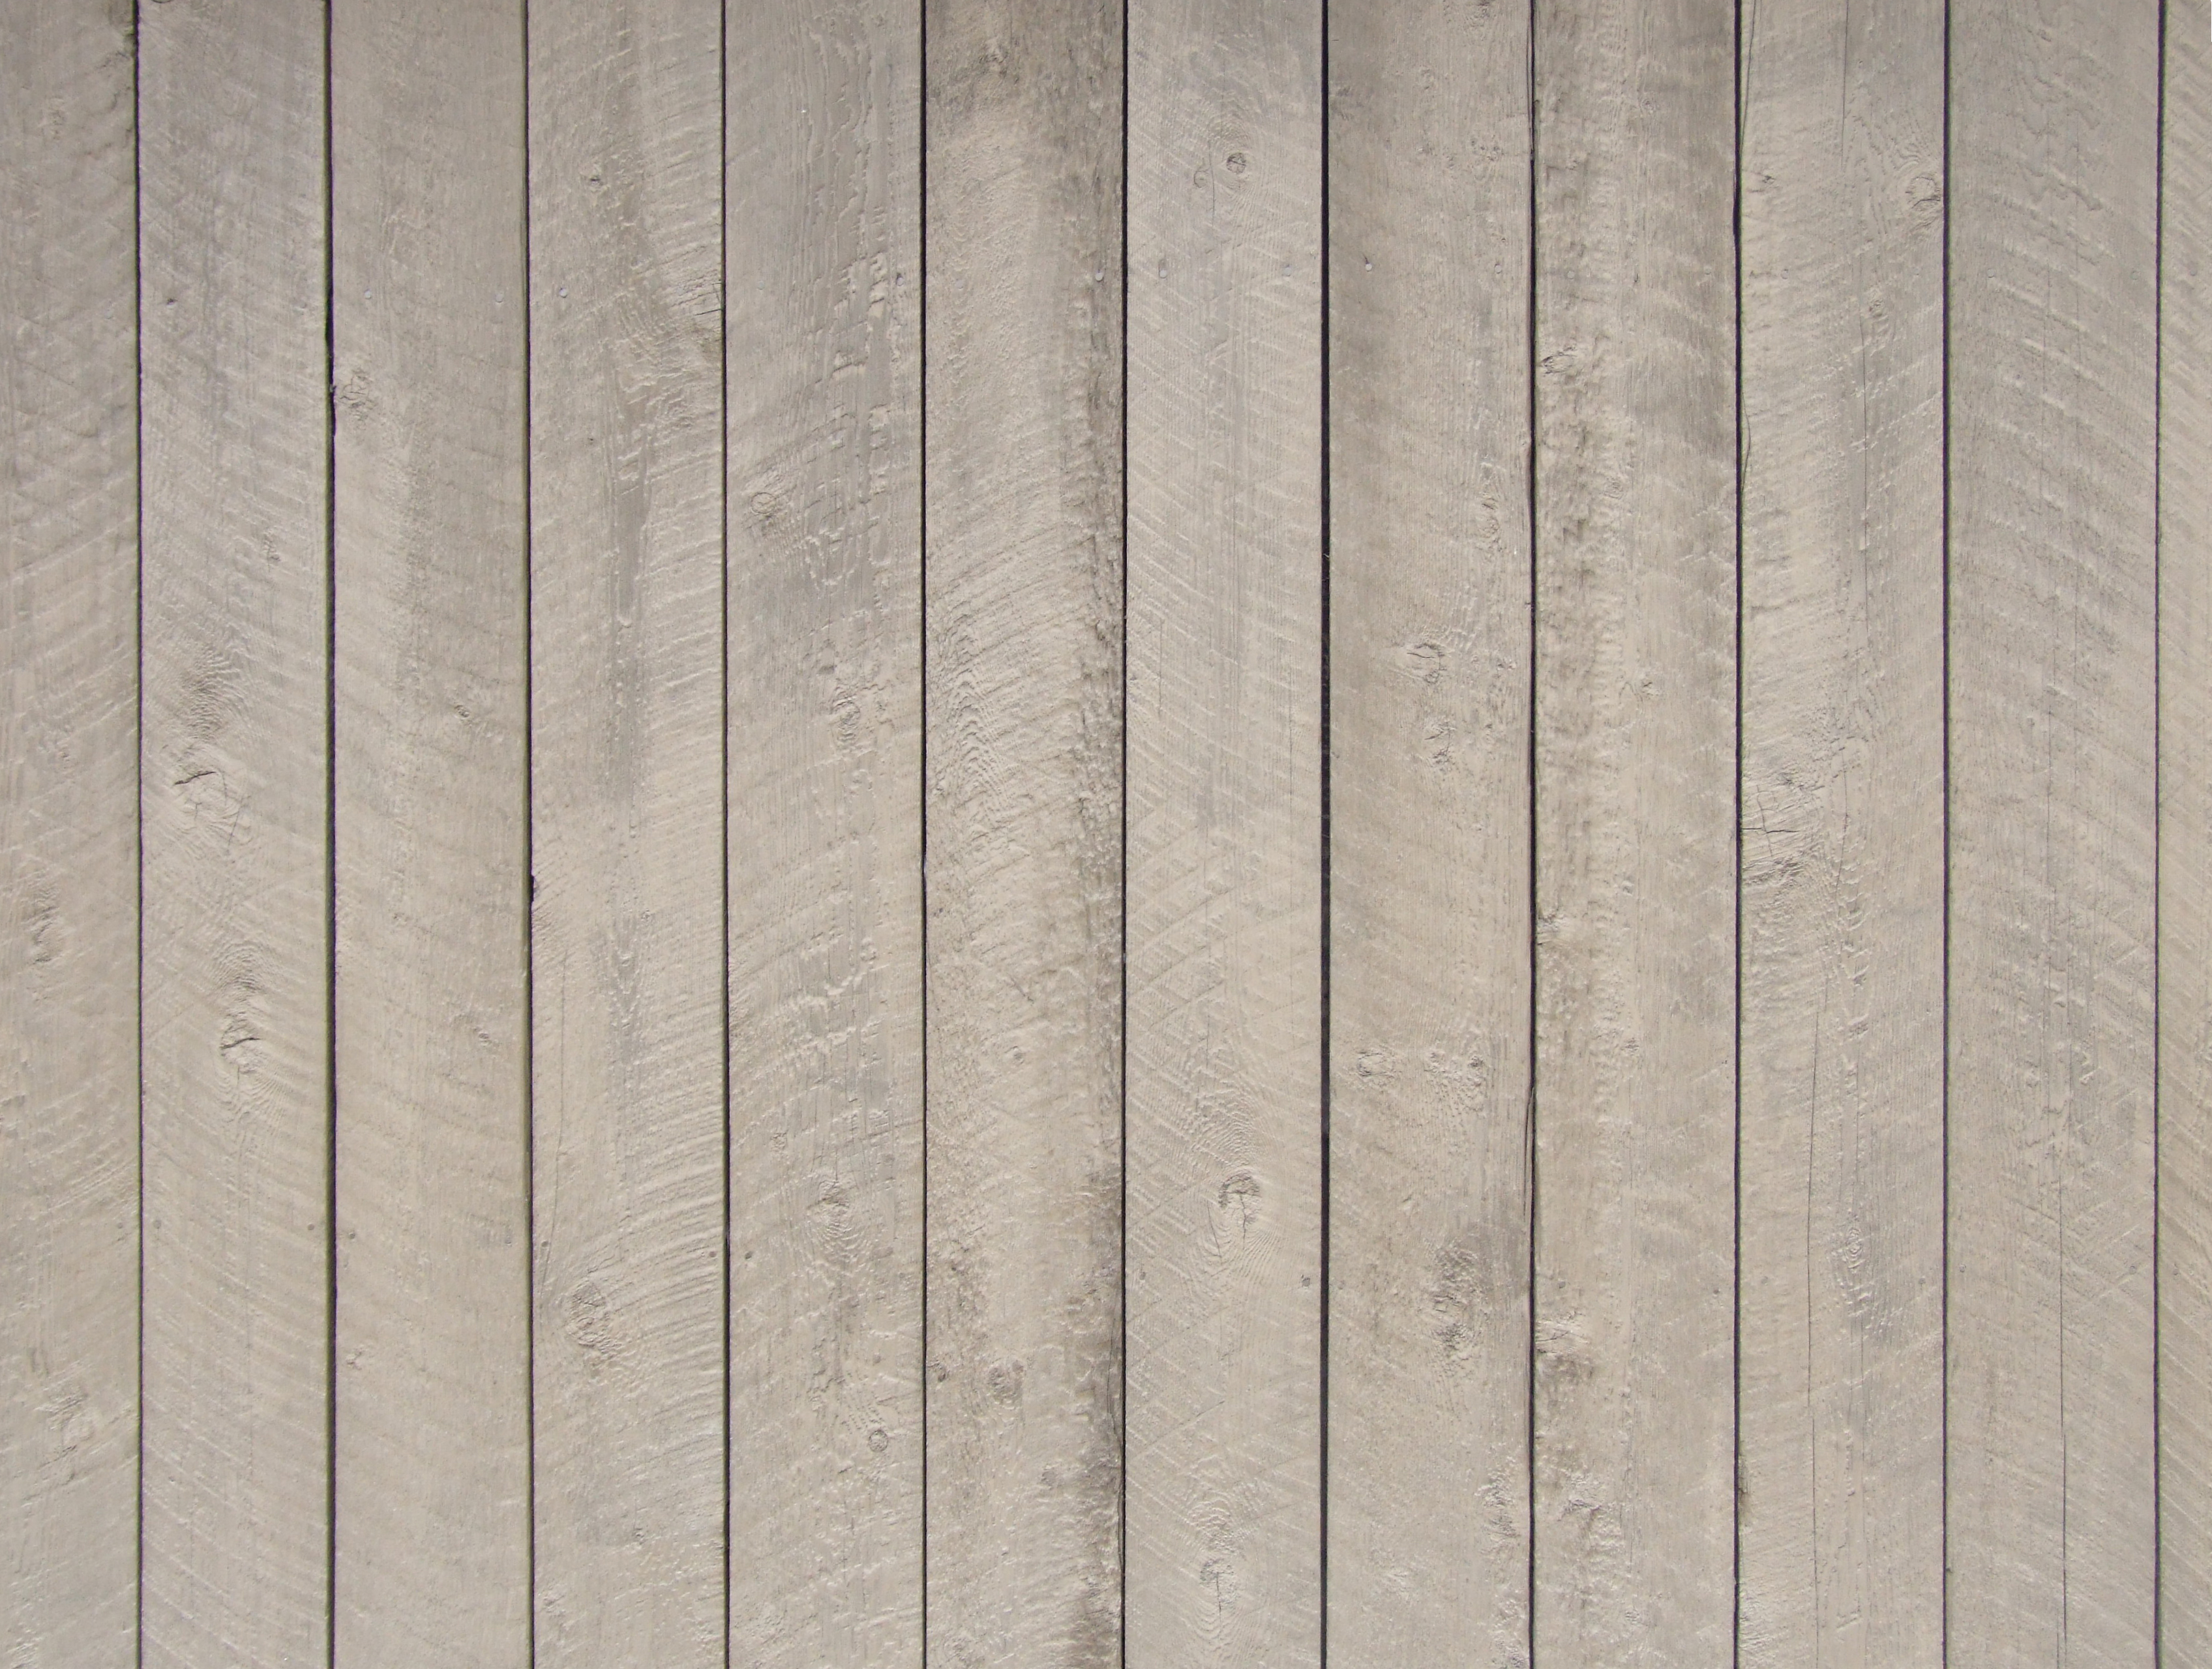 Wood wall texture download textures 3392x2560